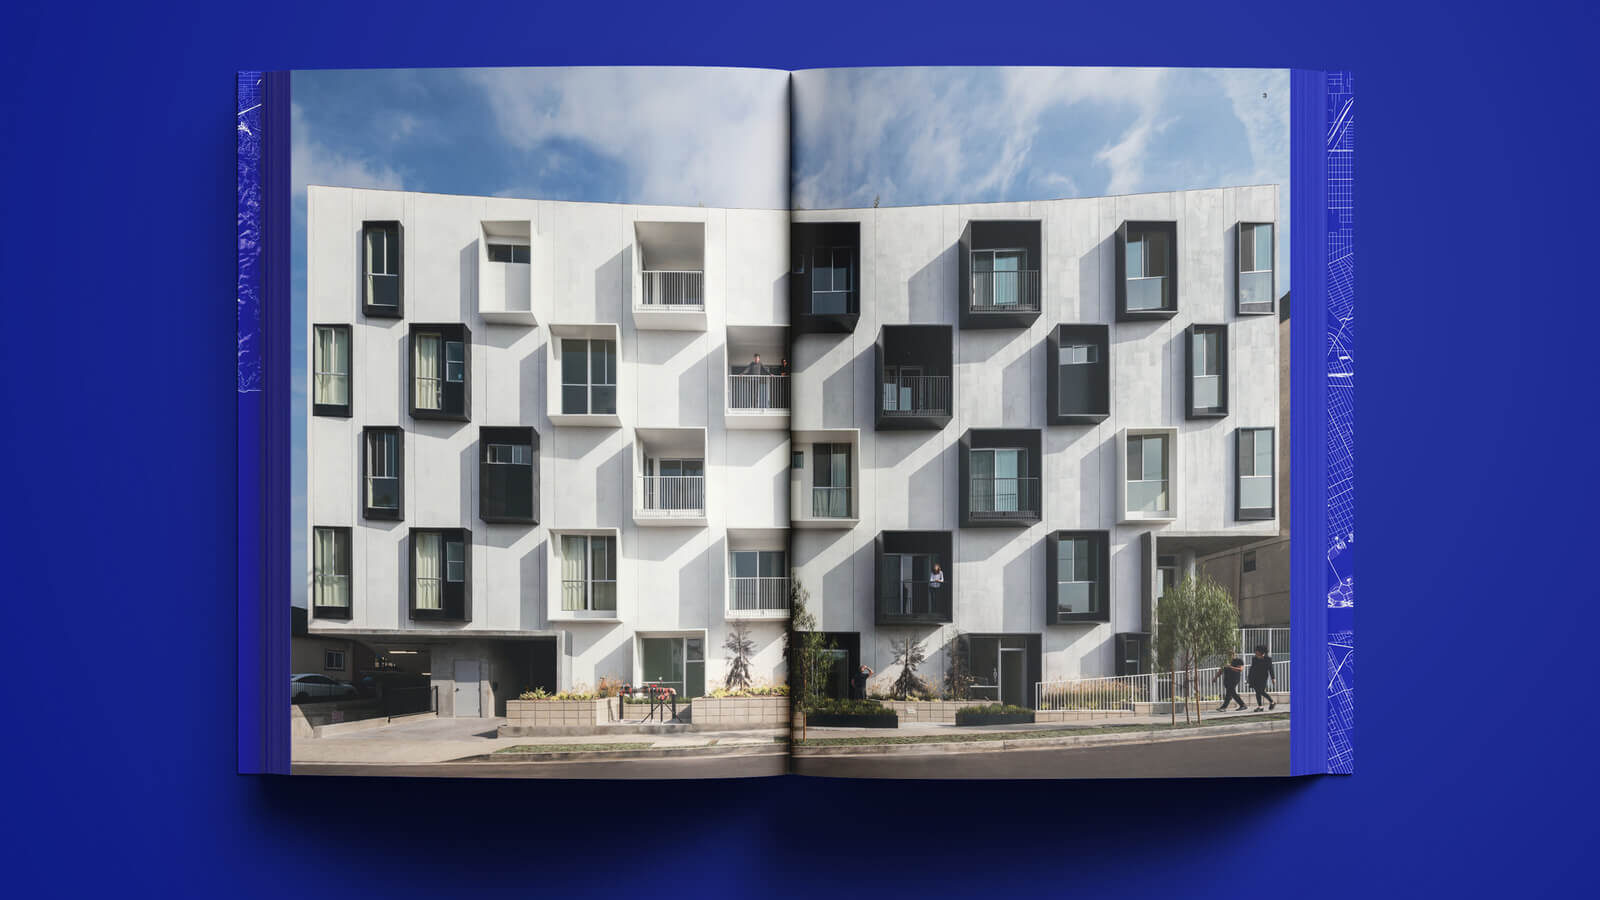 10 New Books for Architecture and Design Lovers